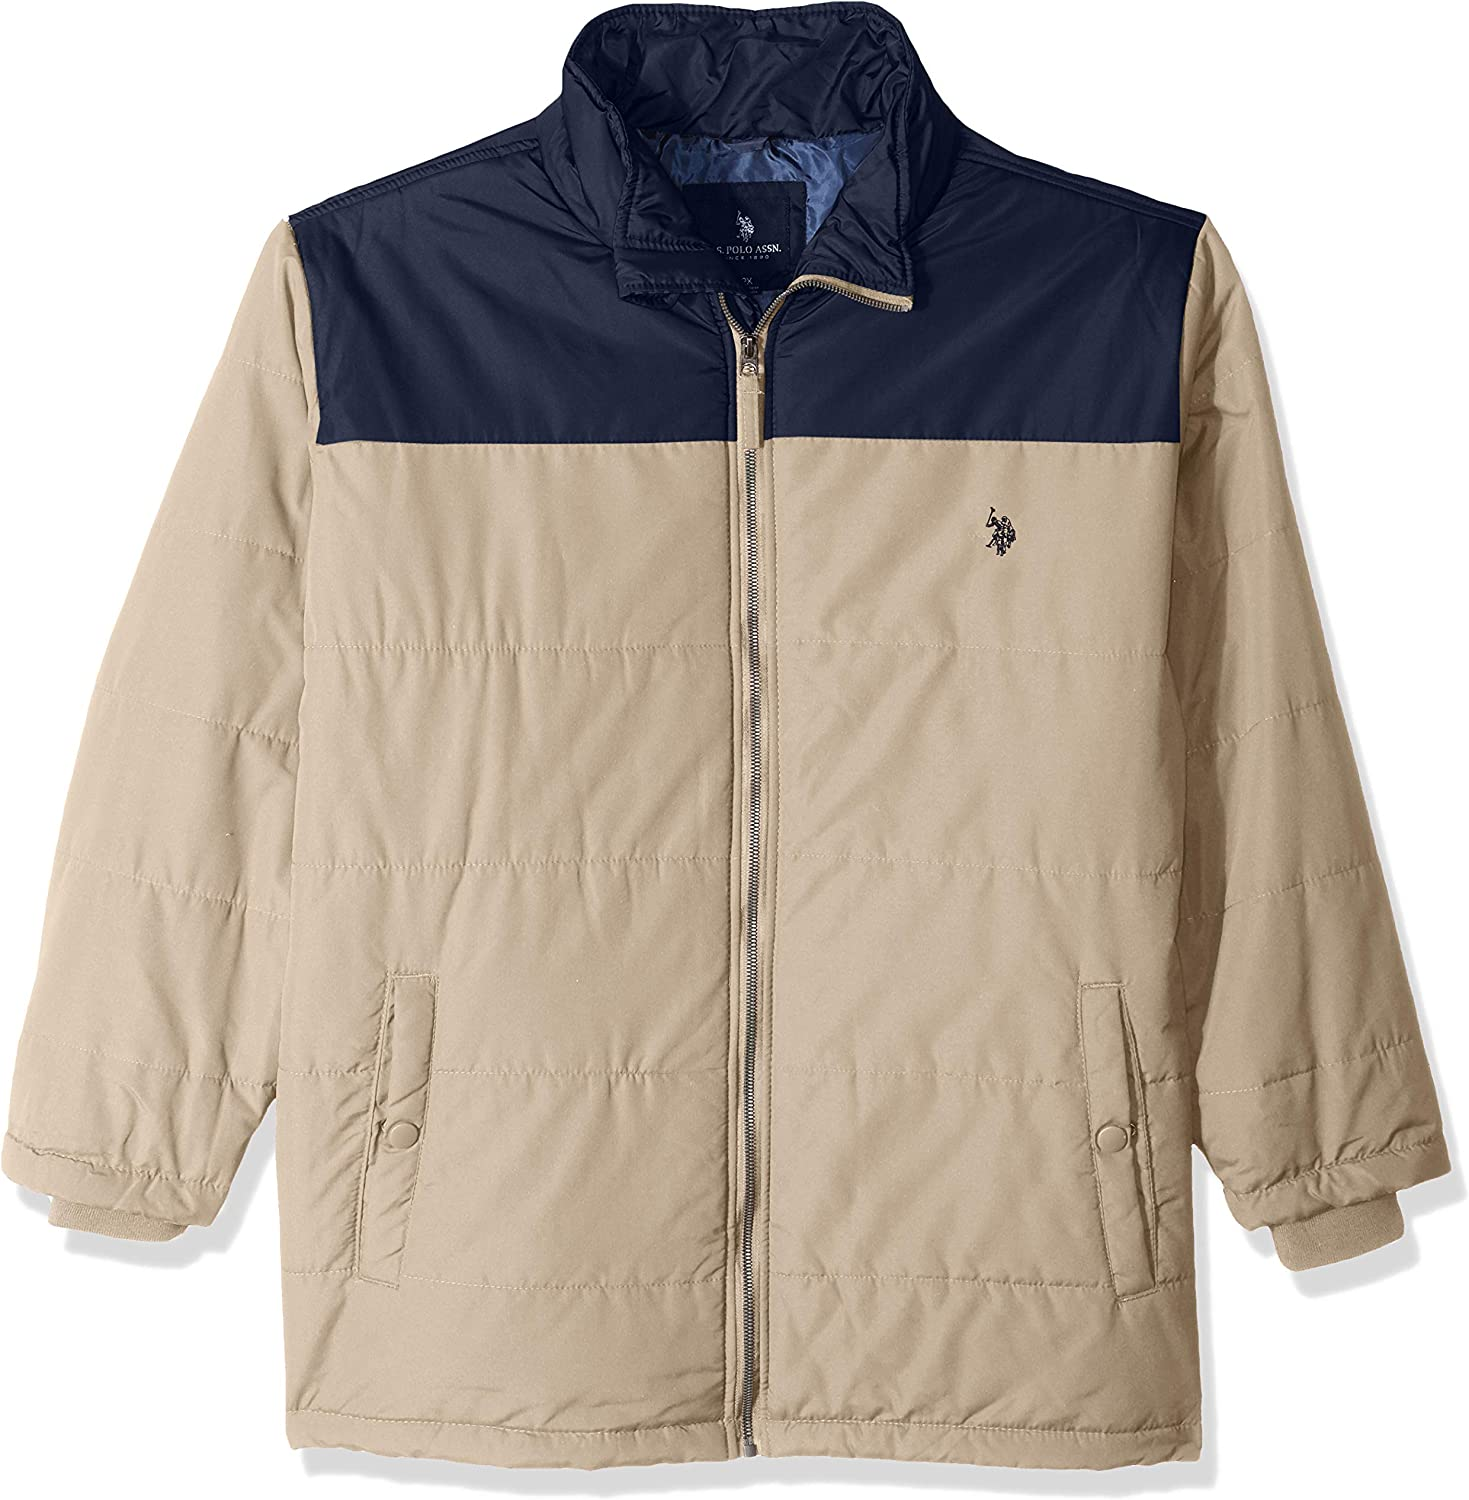 Mens Classic Bubble Jacket with Polar Fleece Lining and Mini Logo US Polo Assn Mens Traditional Collections Outerwear /& Swim Polo Assn U.S